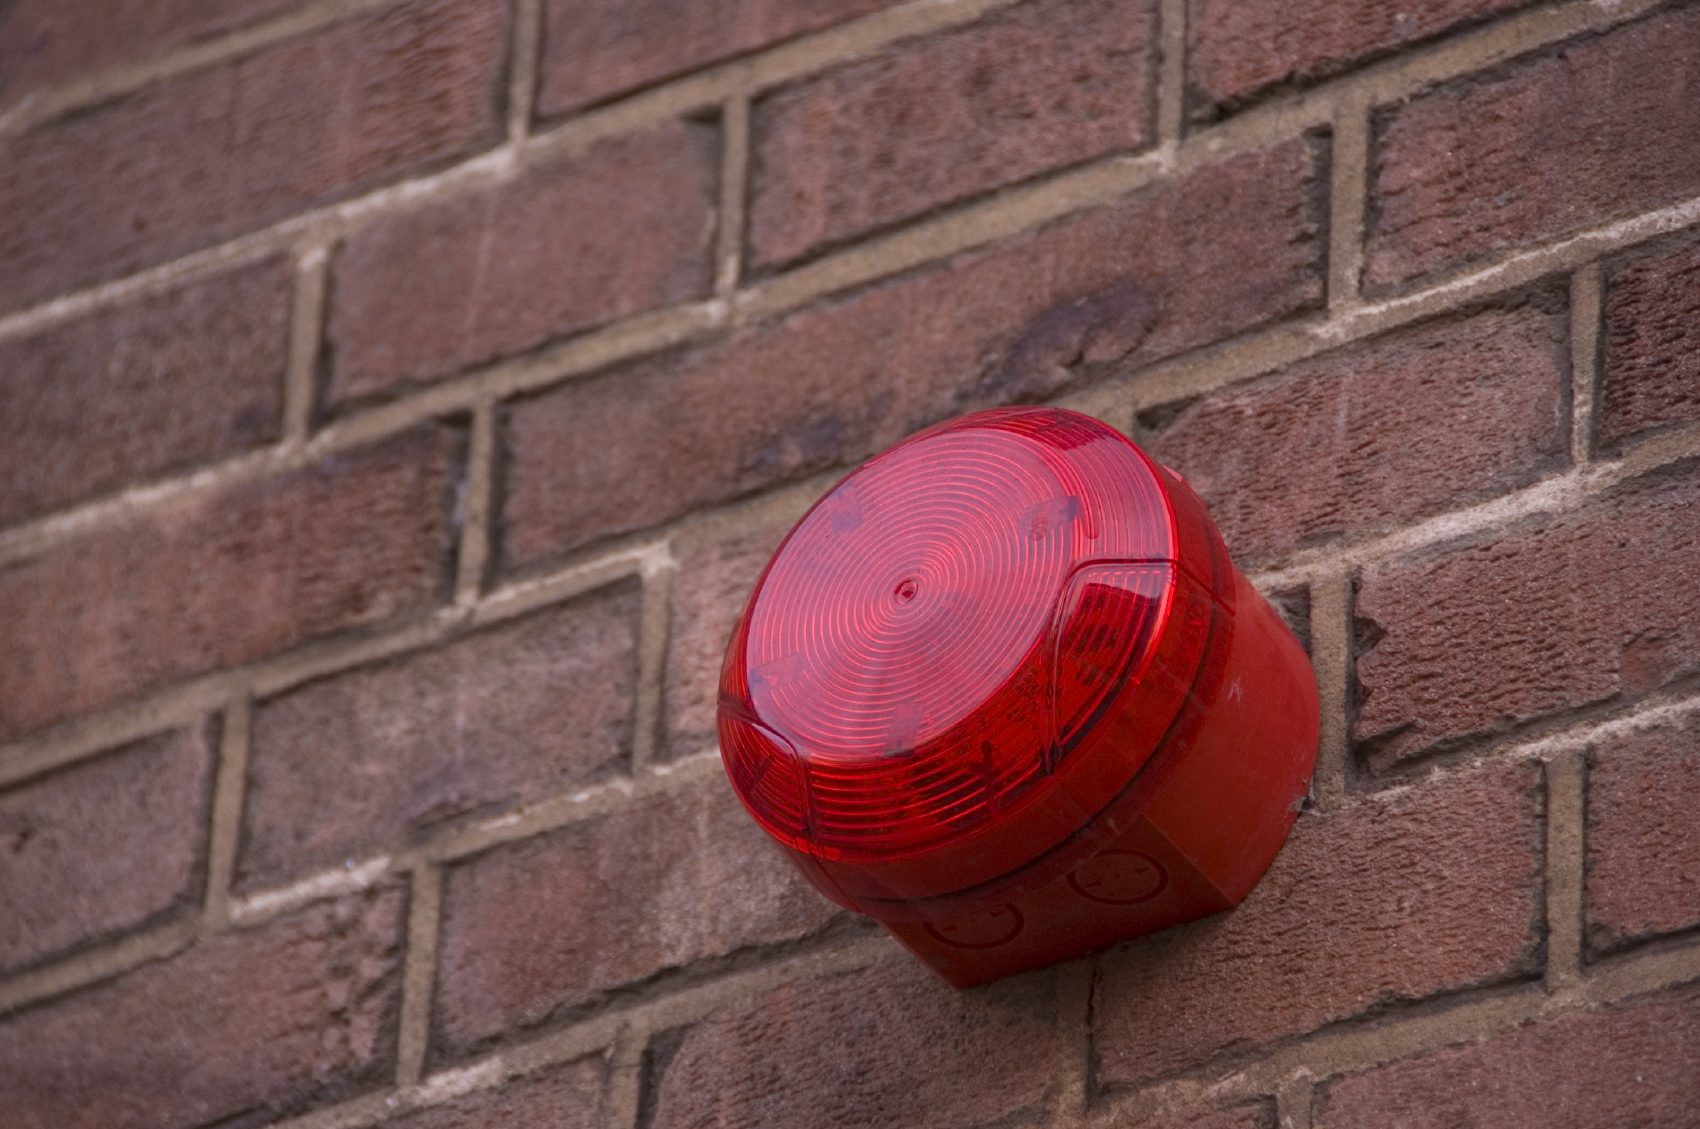 Red Alarm on Exterior Wall of Building